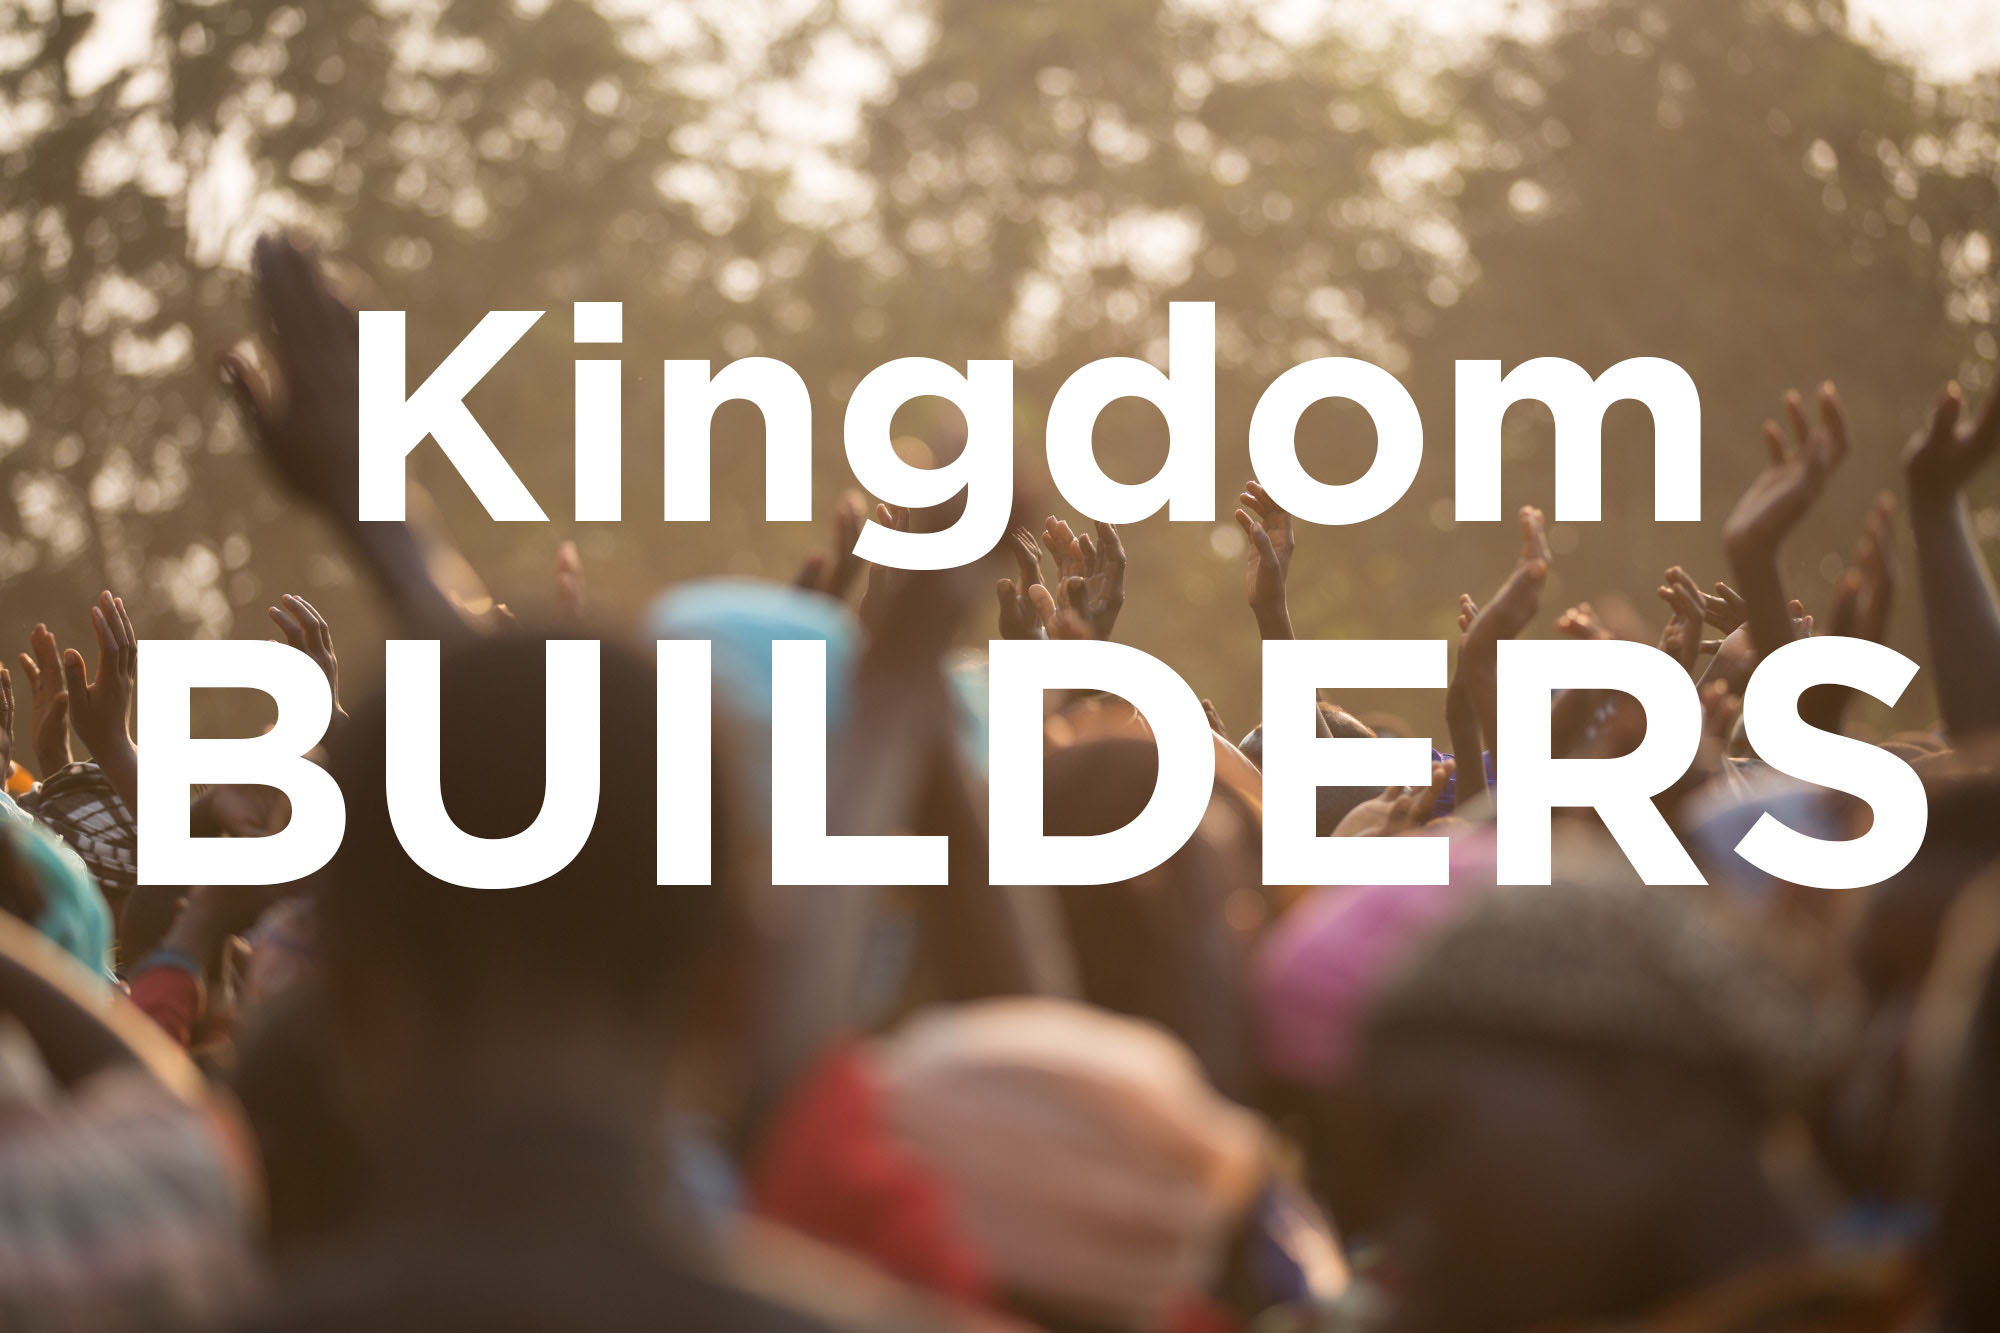 Kingdom builders - For the Kingdom of God is already among you (within you). Luke 17:21 NLTWe believe part of the Kingdom of God is the fulfillment of God's will working through us to bring love and joy to all people, so that they may know him and draw closer to Him. We do this by giving $1 dollar a day on top of our tithes to the church (an offering), that allows us to further the gospel through supporting missionaries, the building of houses for the homeless abroad, missions work in our community, working with orphanages, women's crisis centers, and pro-life organizations.